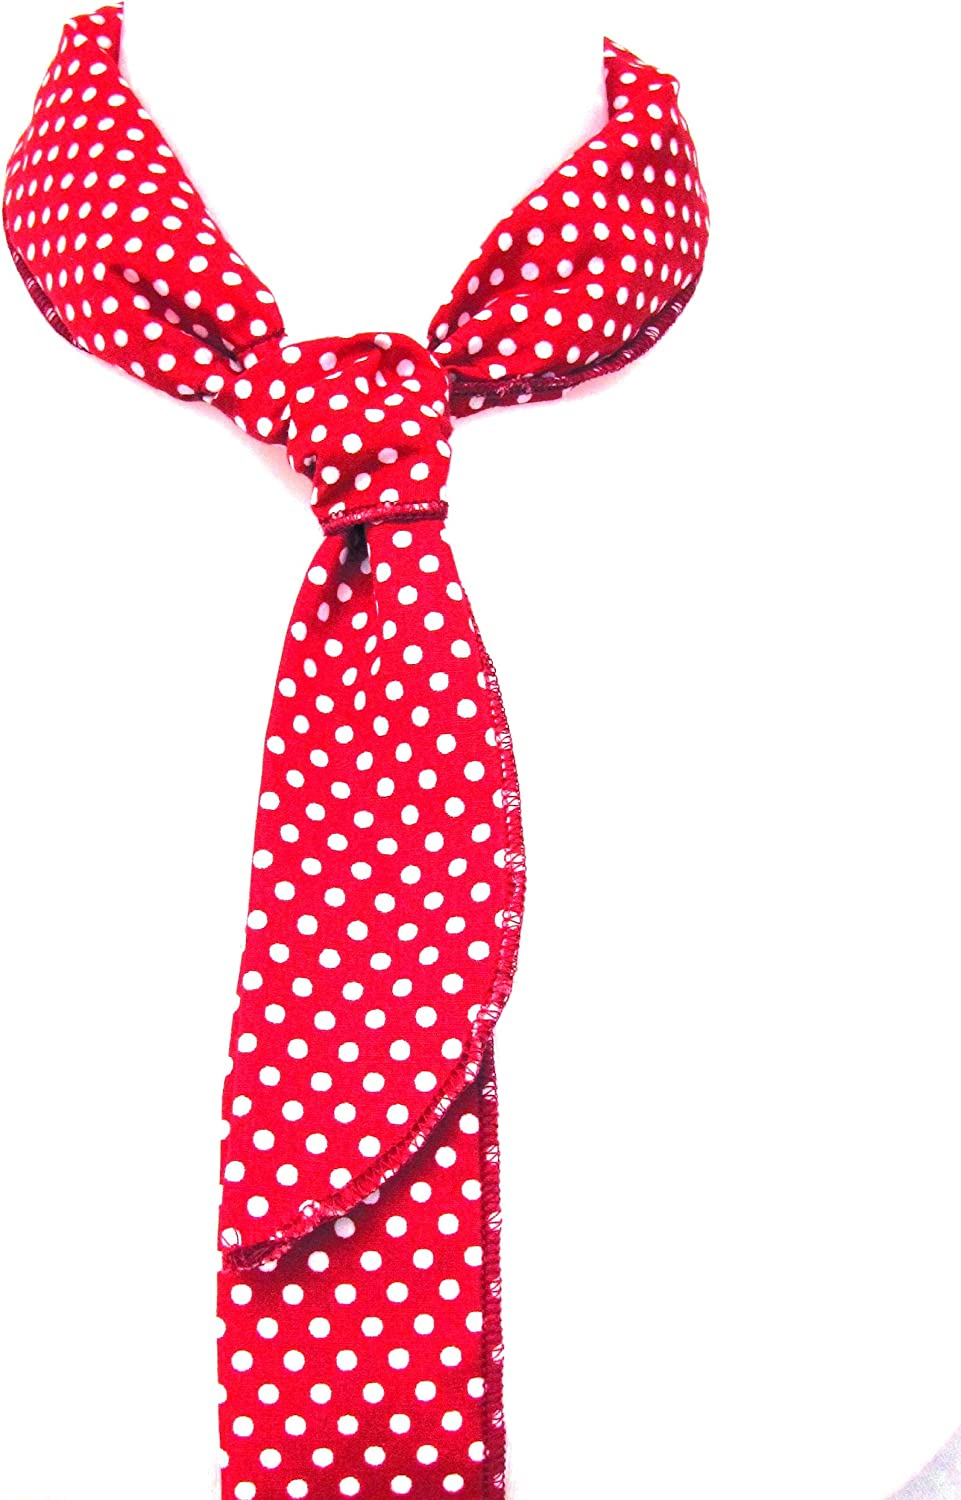 COOLING GEL NECK WRAP NATURAL /& NON TOXIC RED SPOTS MENOPAUSE HOT FLUSH MENO COOL SCARF REUSABLE